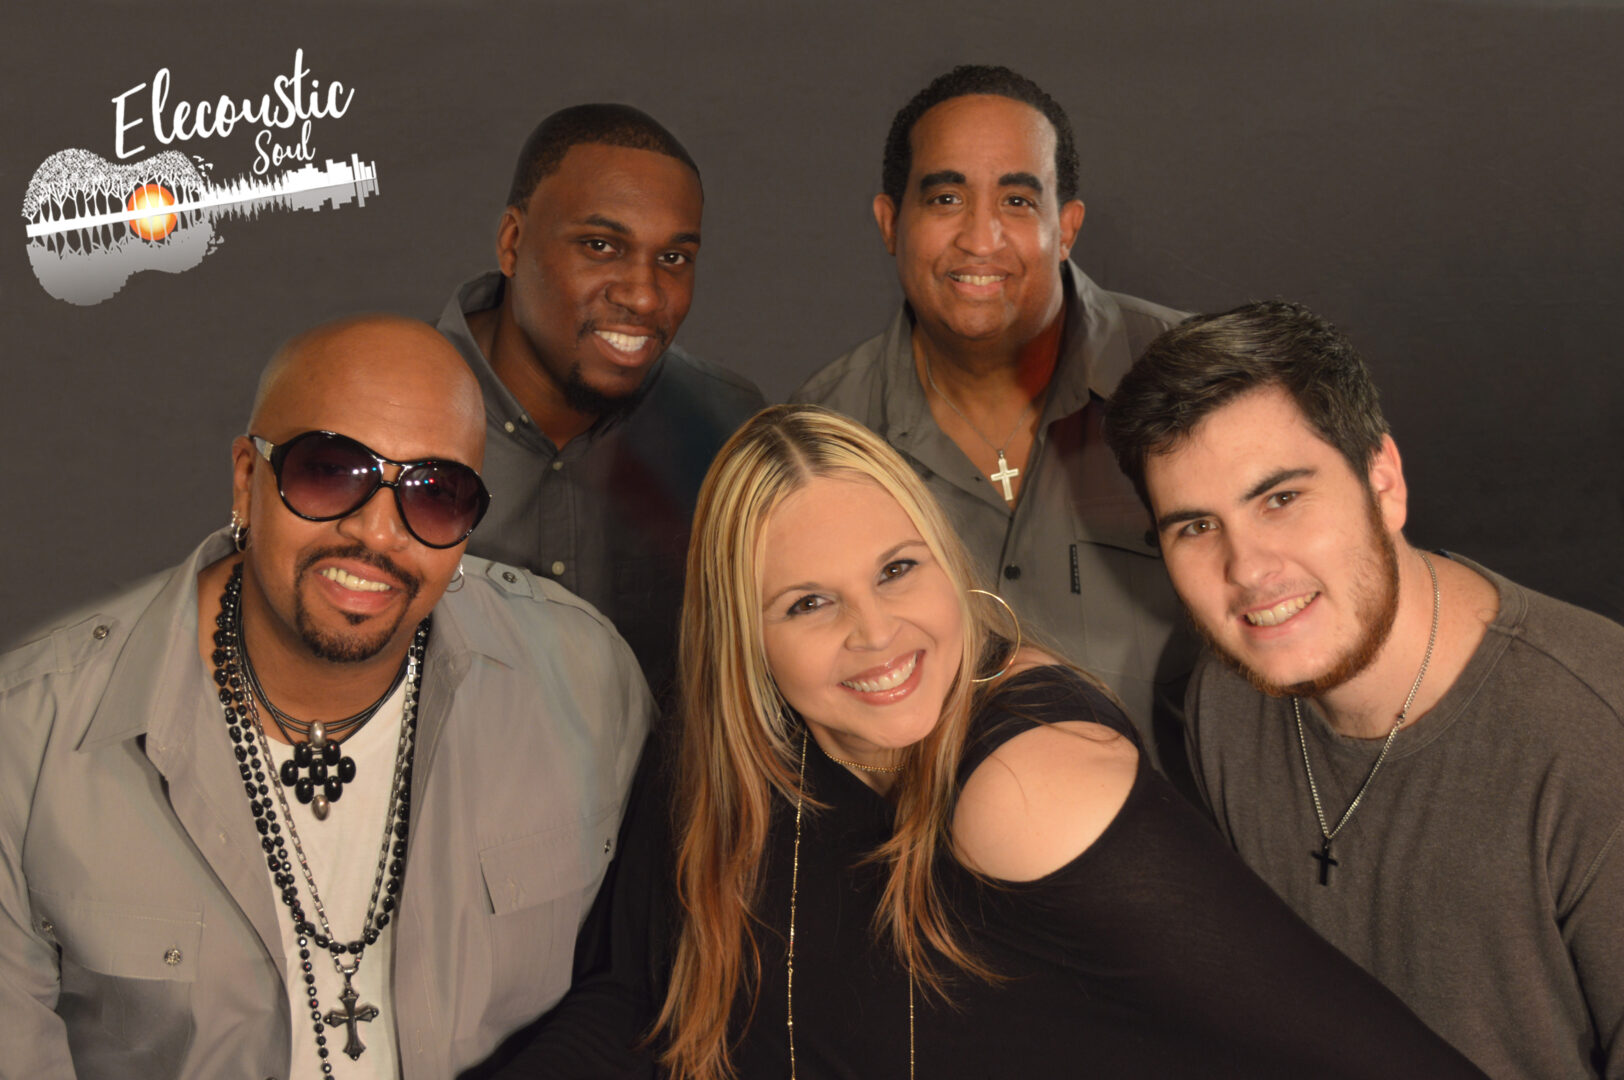 Elecoustic Soul to perform in historic downtown Franklin, TN at Wine Down Main Street 2021